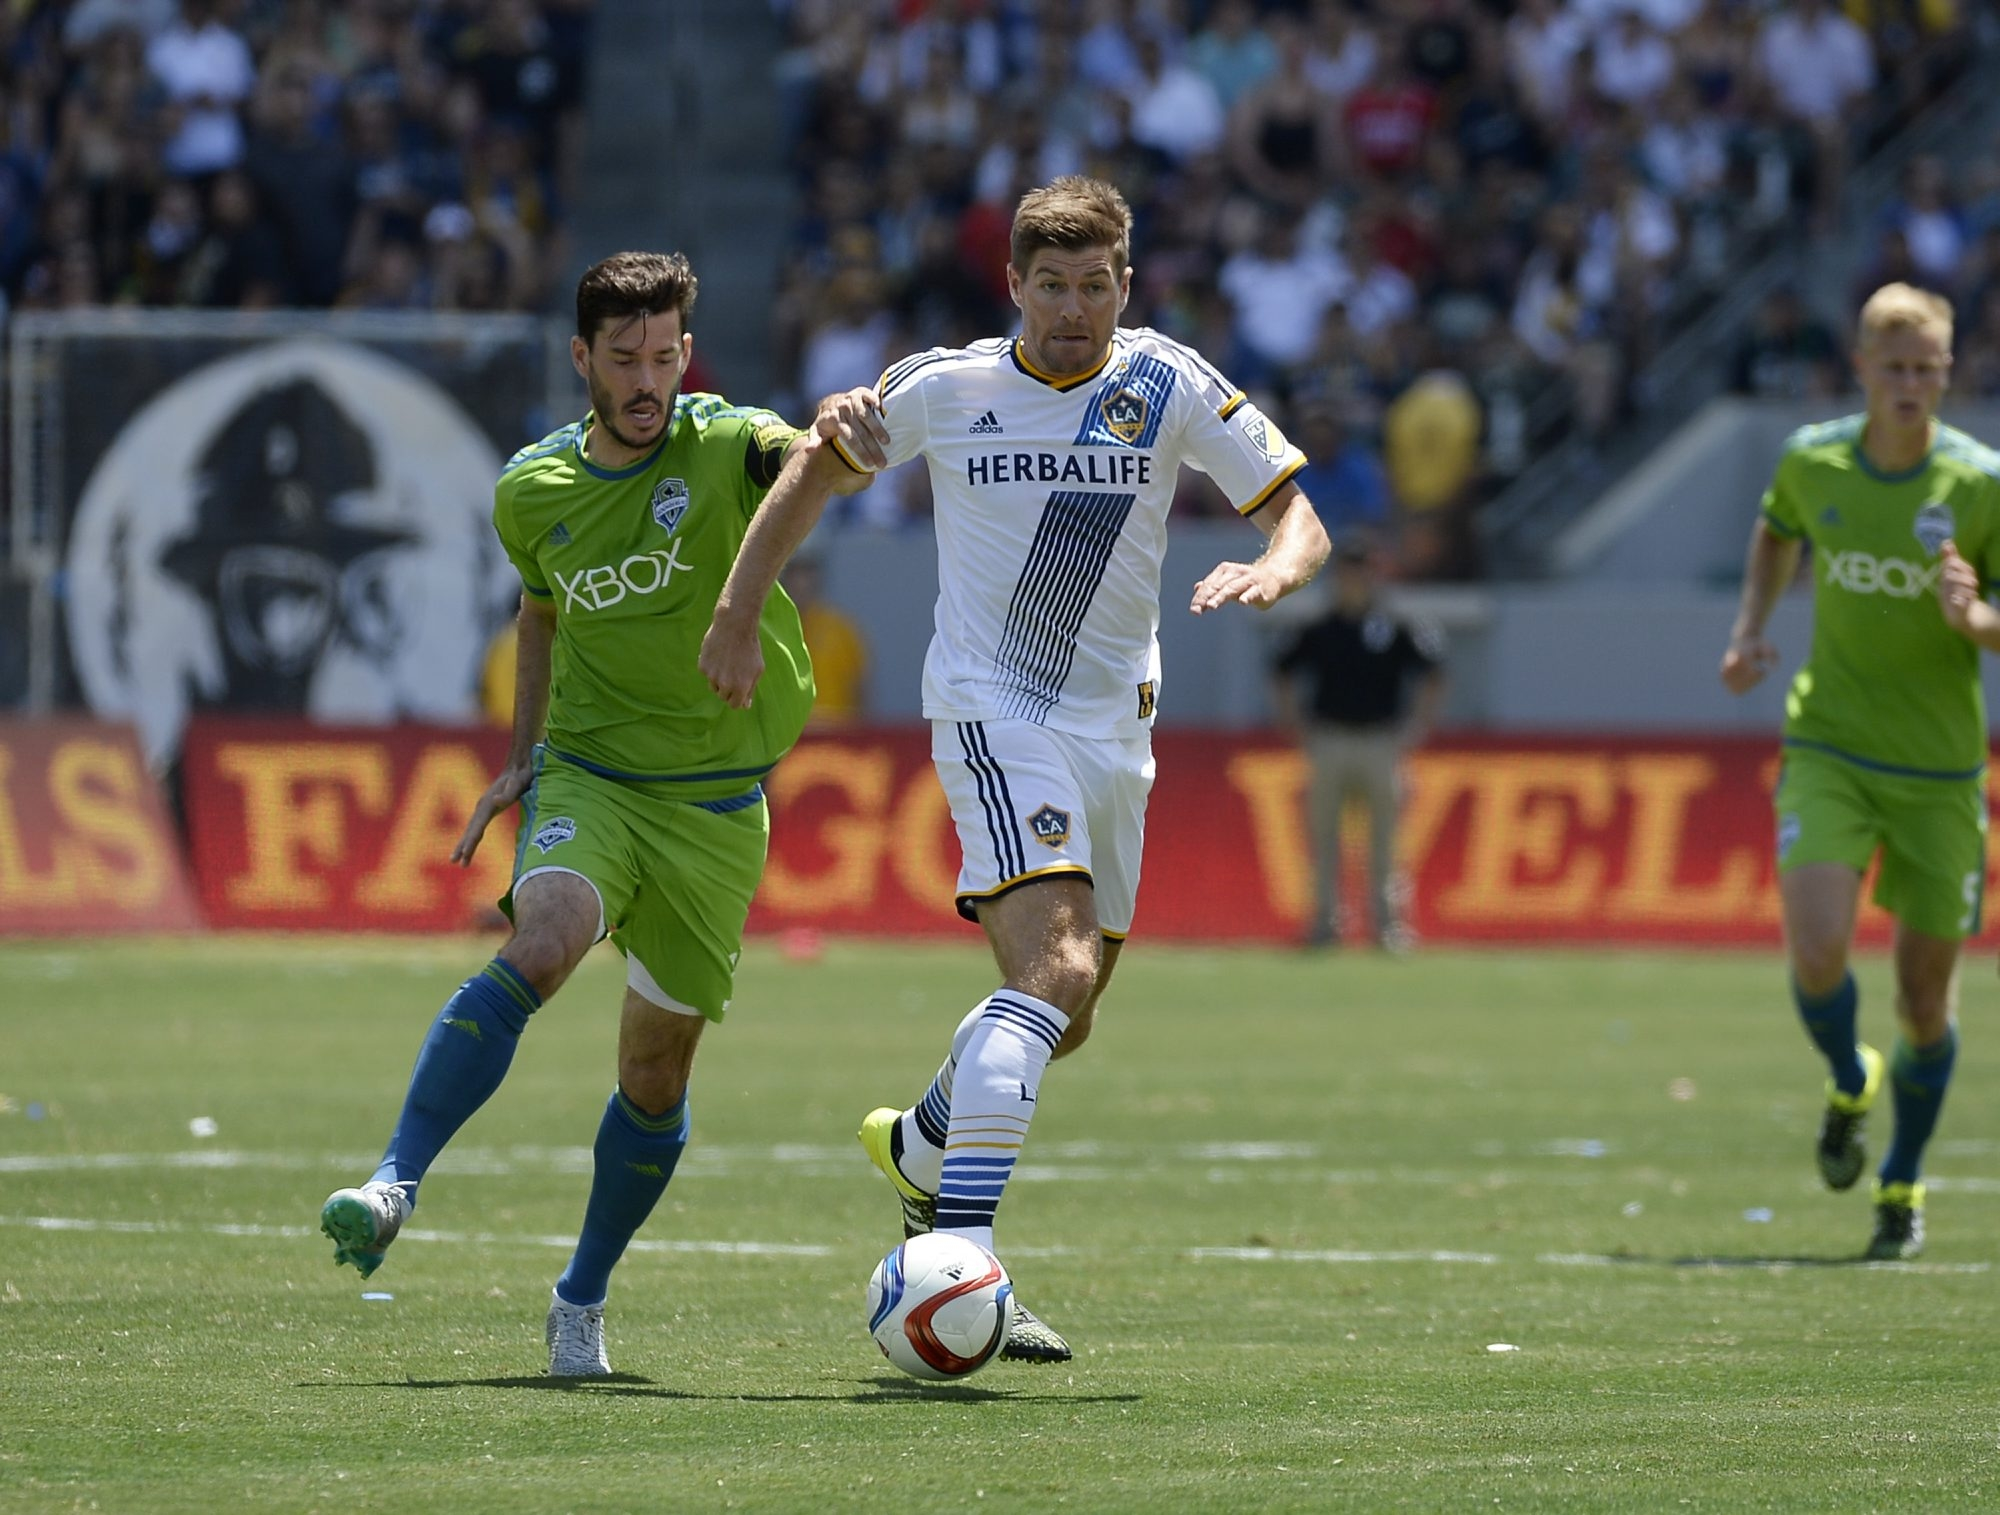 Steven Gerrard (8) of the Los Angeles Galaxy drives the ball against Brad Evans (3) of the Seattle Sounders on Aug. 9, 2015.